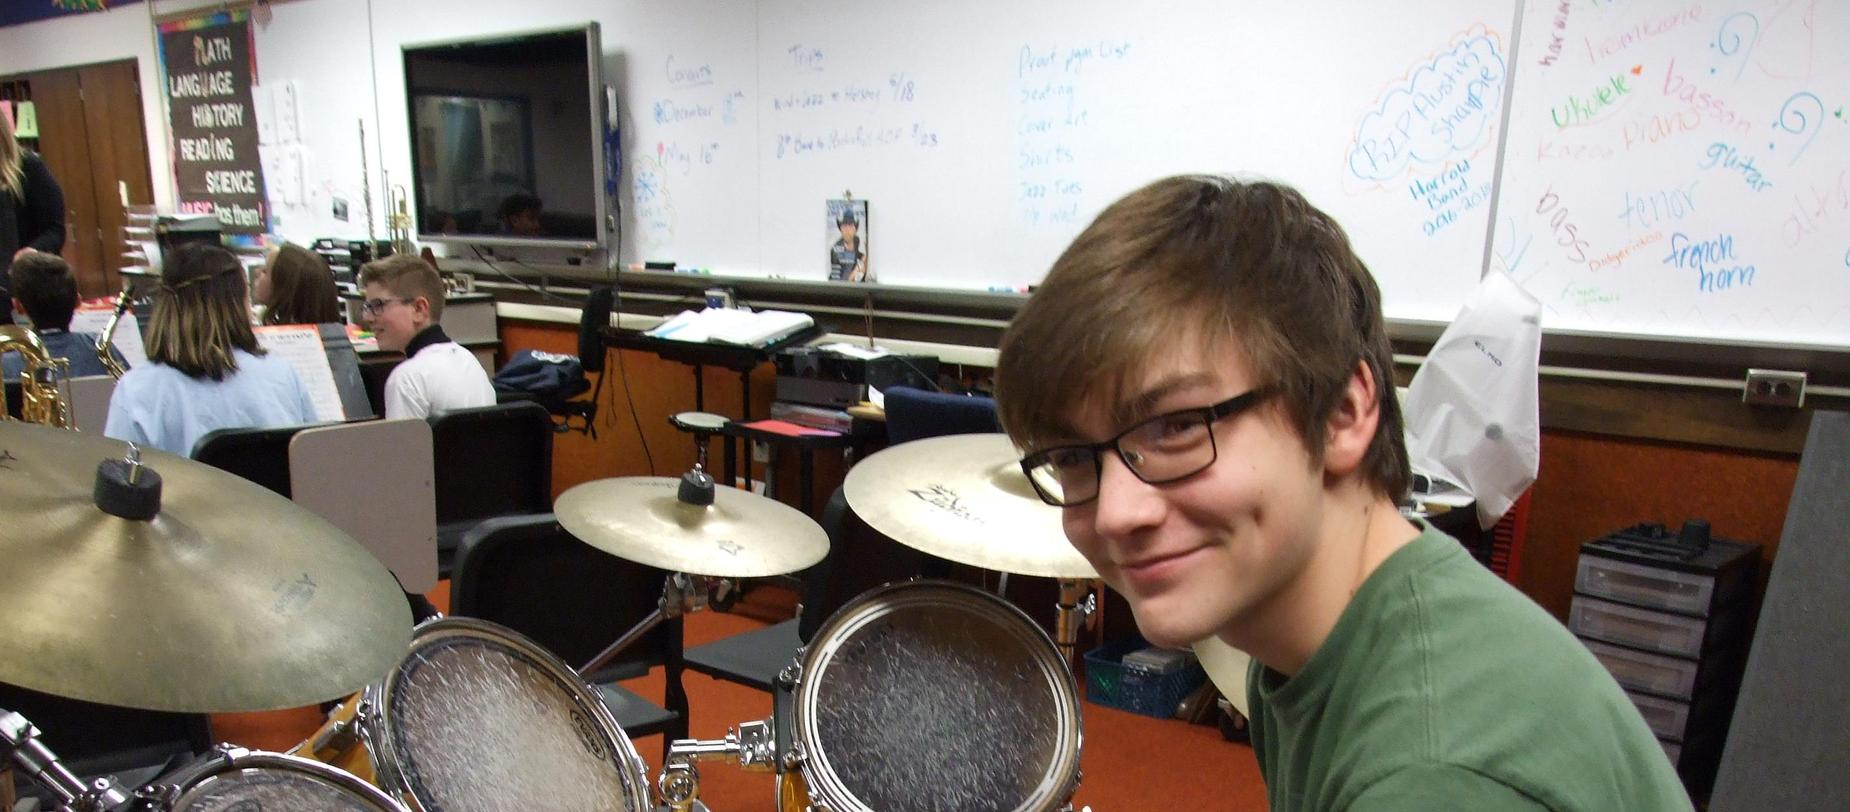 Band Student Playing Drums